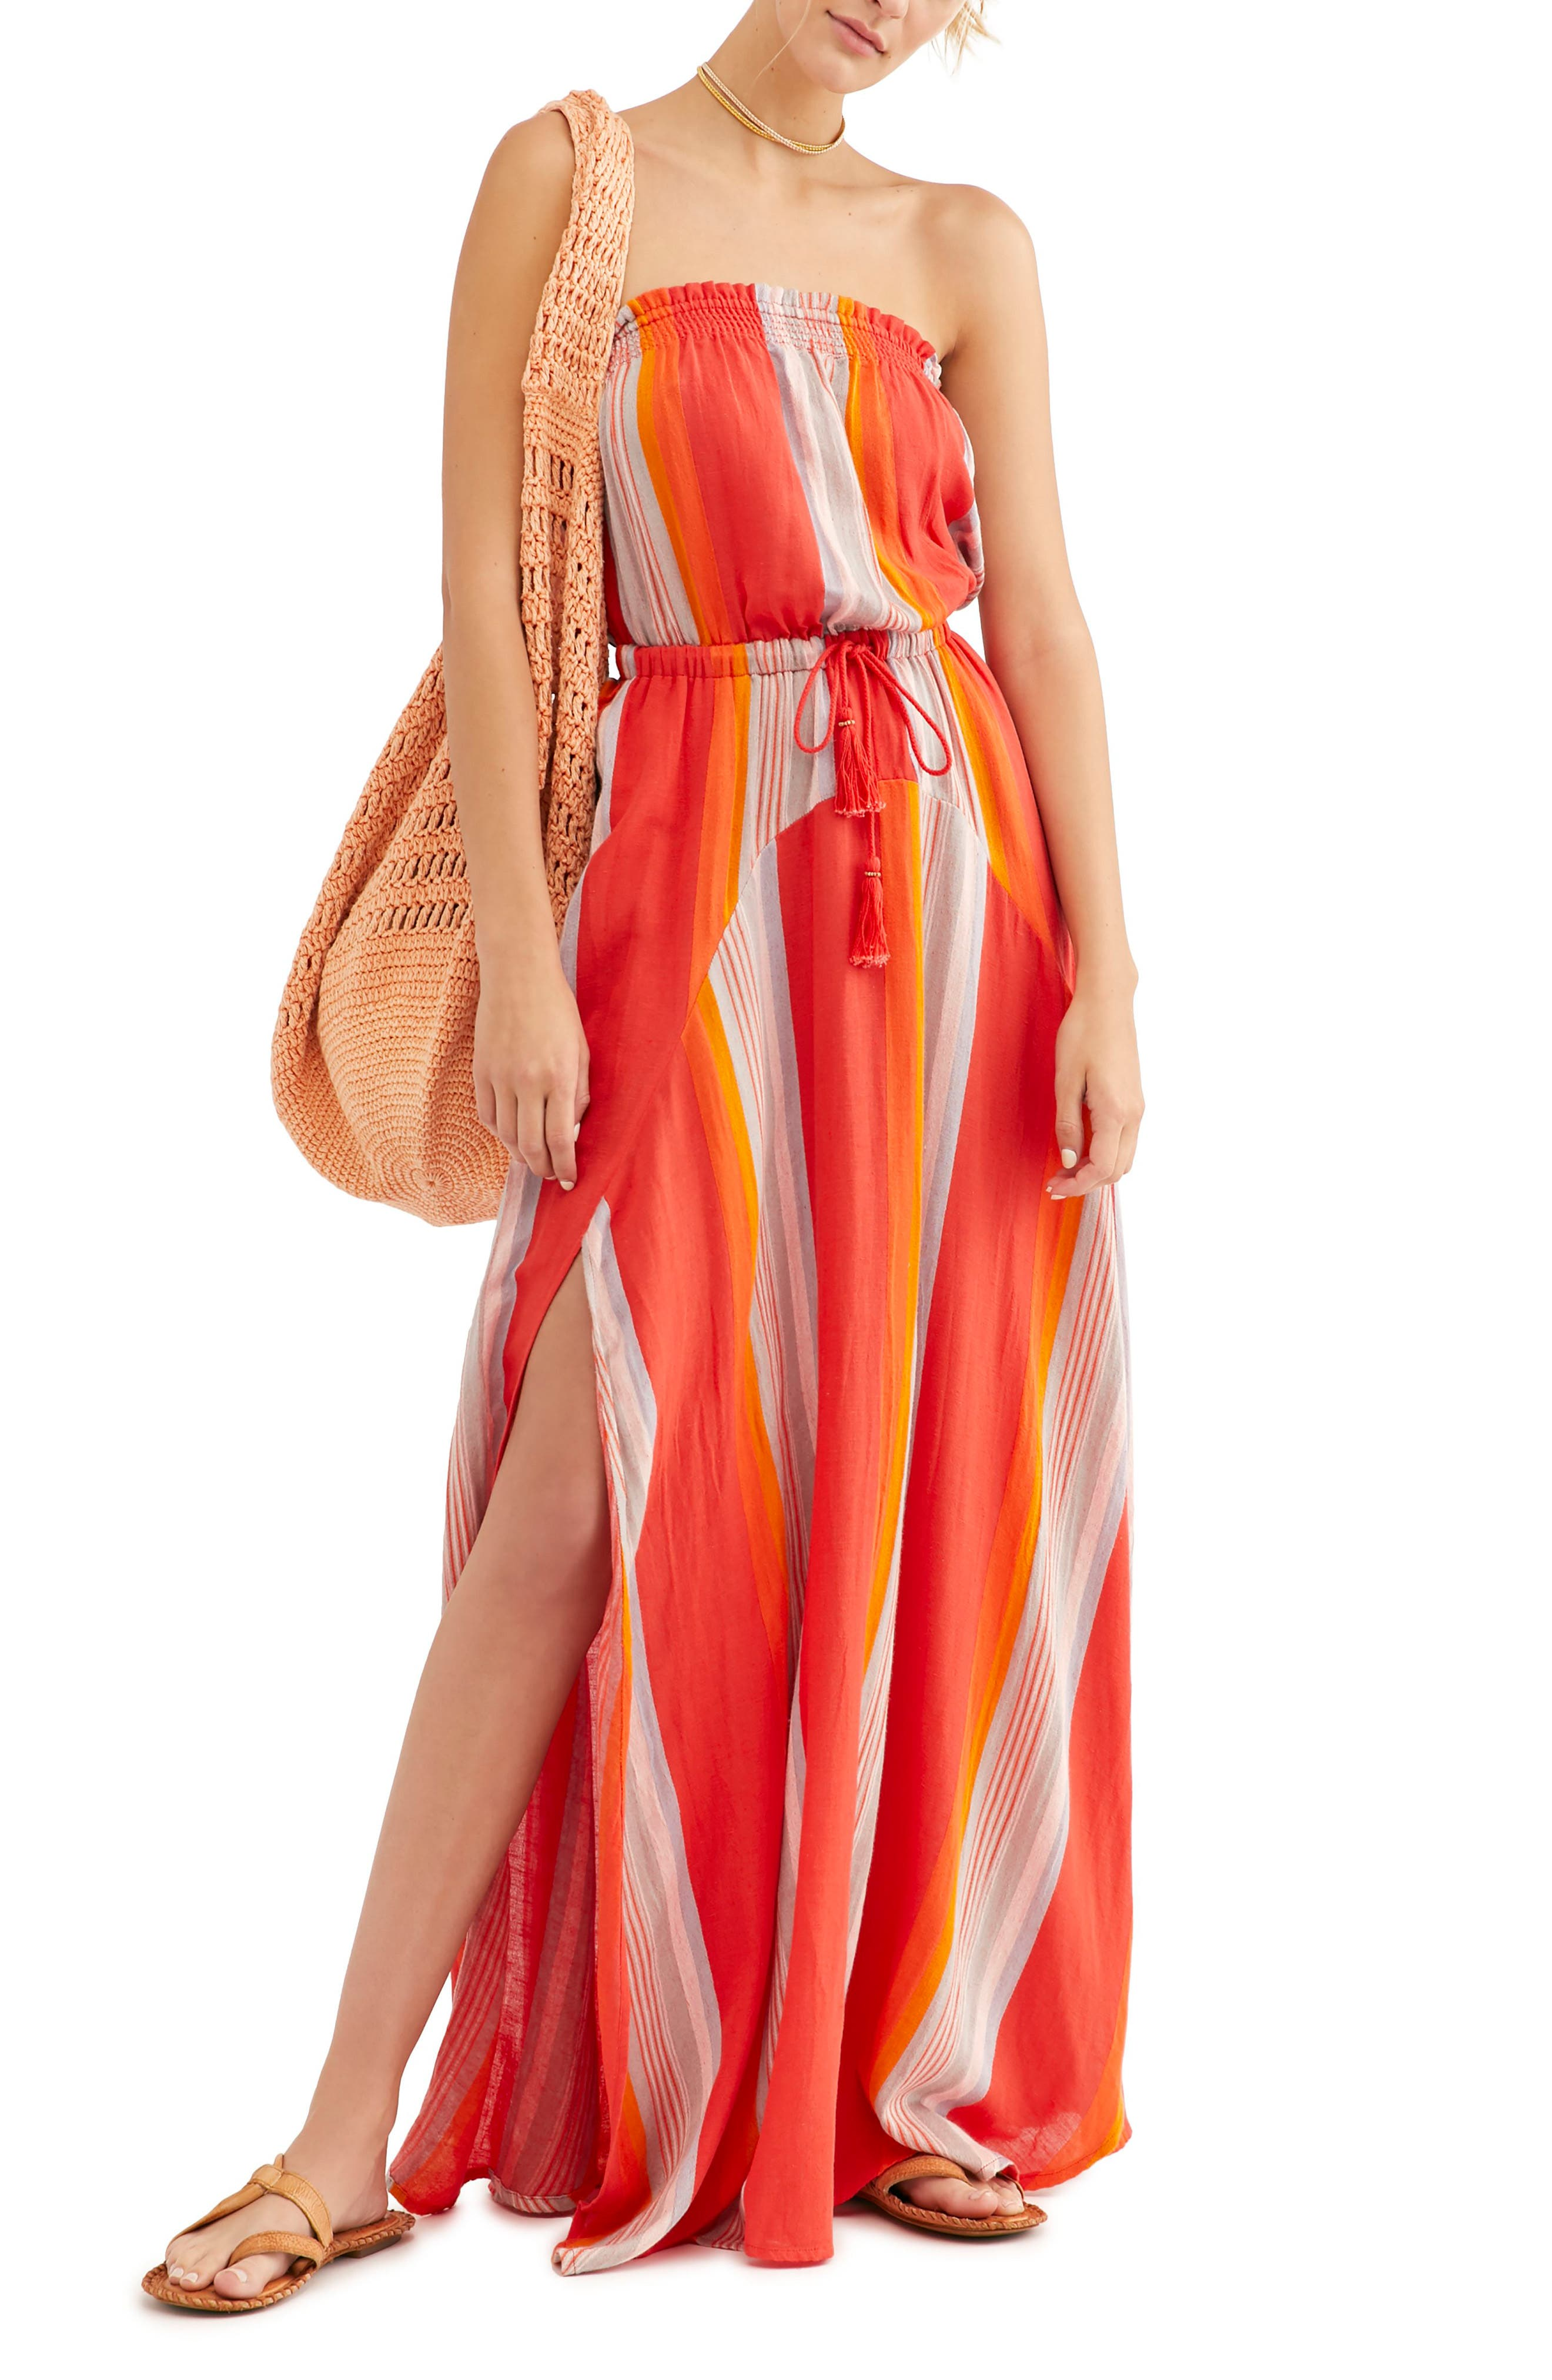 Endless Summer By Free People Calling Your Name Strapless Maxi Dress, Red